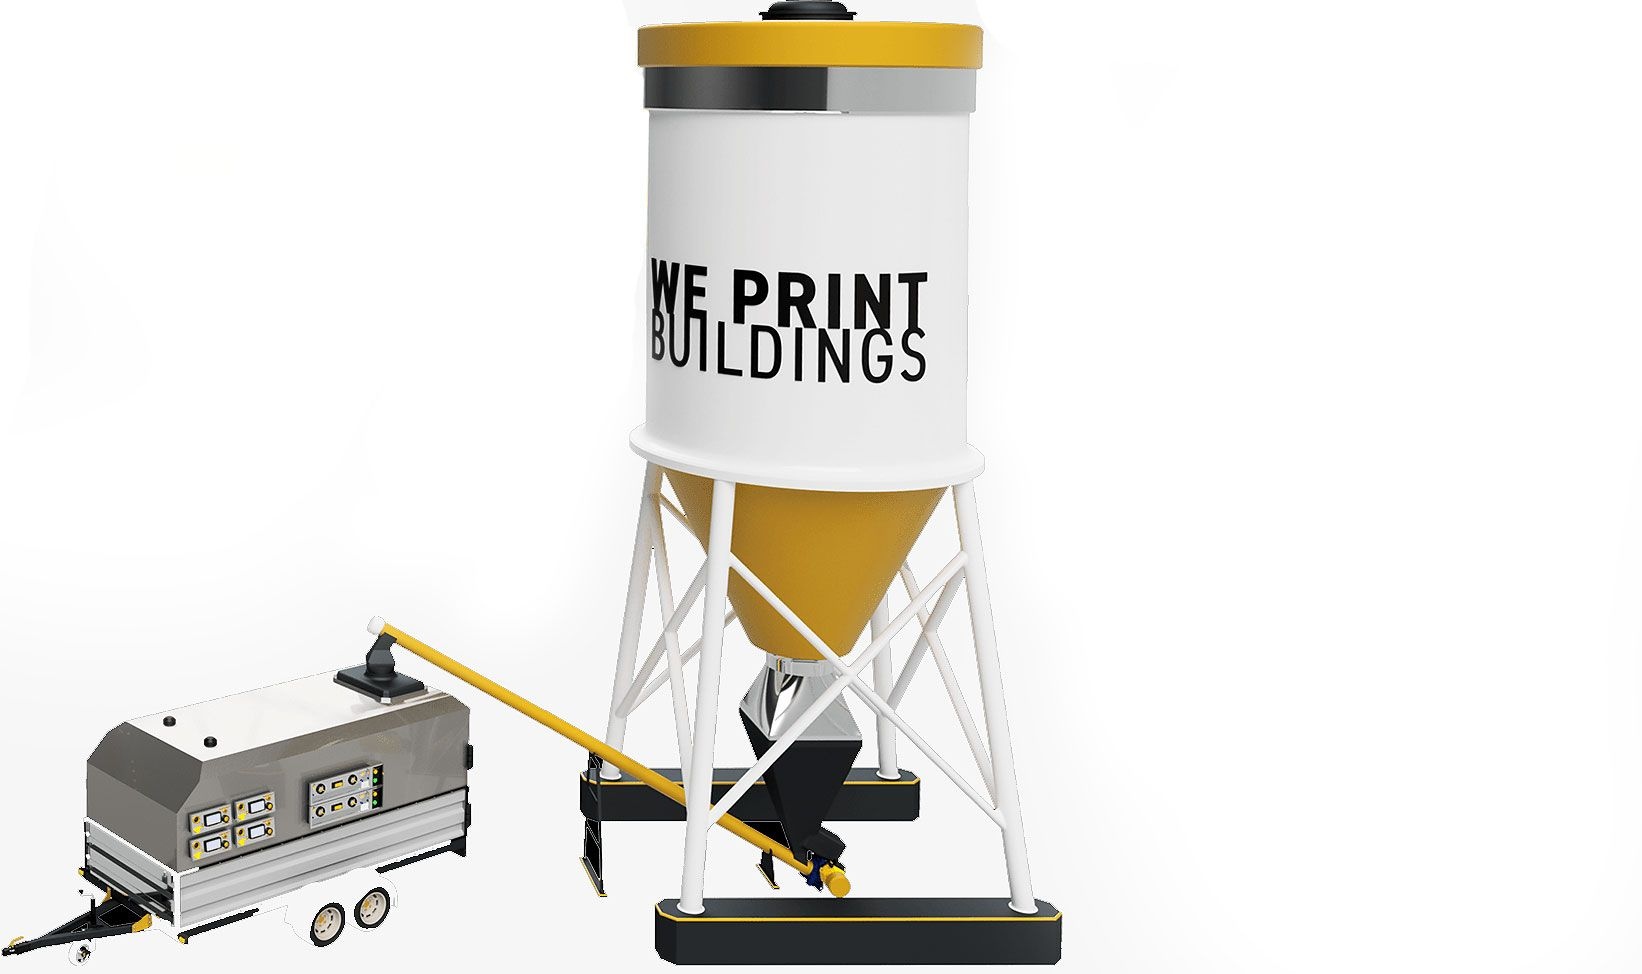 Apis Cor Mobile 3d House Printer Prints While Remaining Inside Of The Building